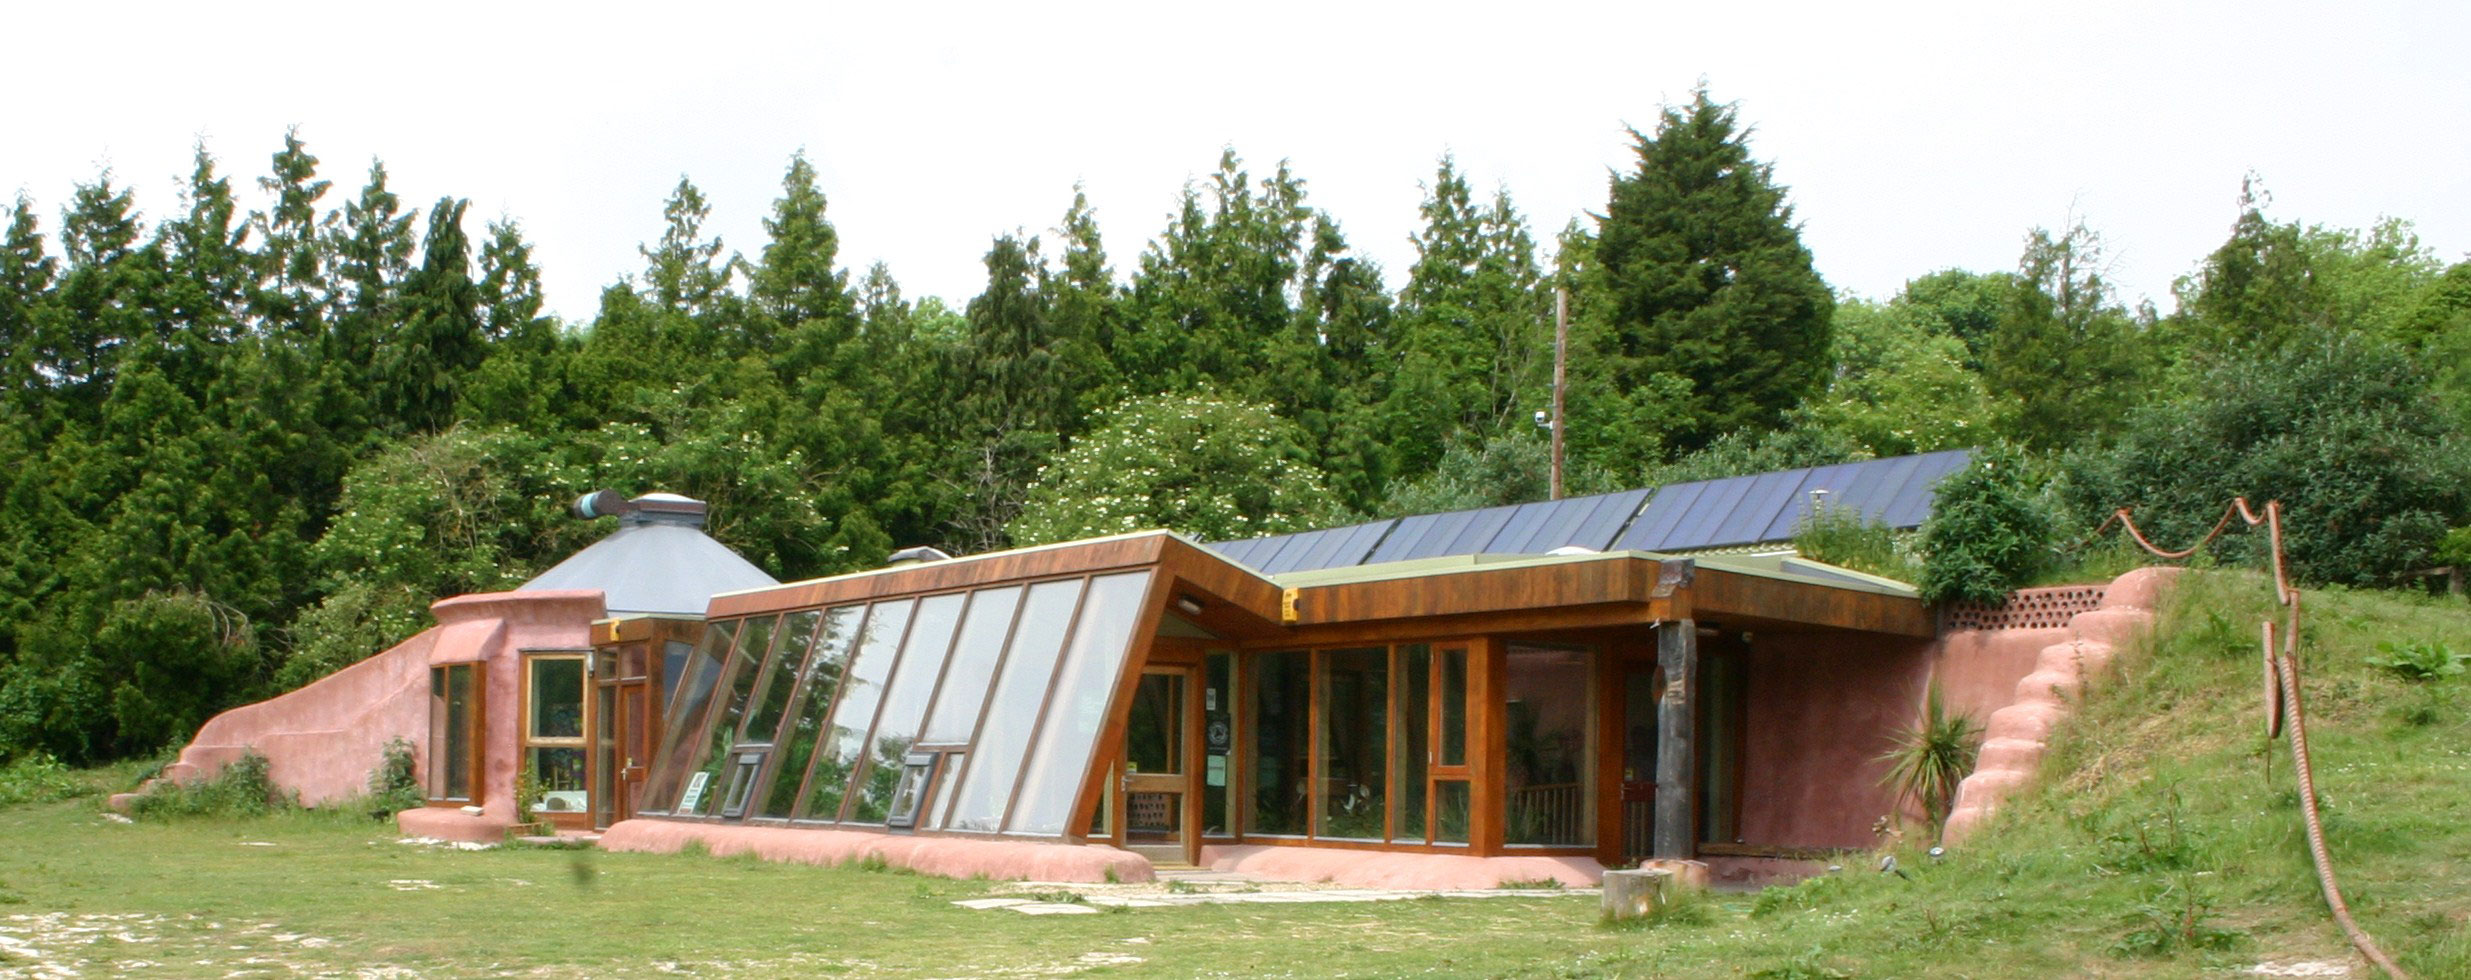 Self Sustaining Homes building an earth-friendly, self-sustaining home - landcentral